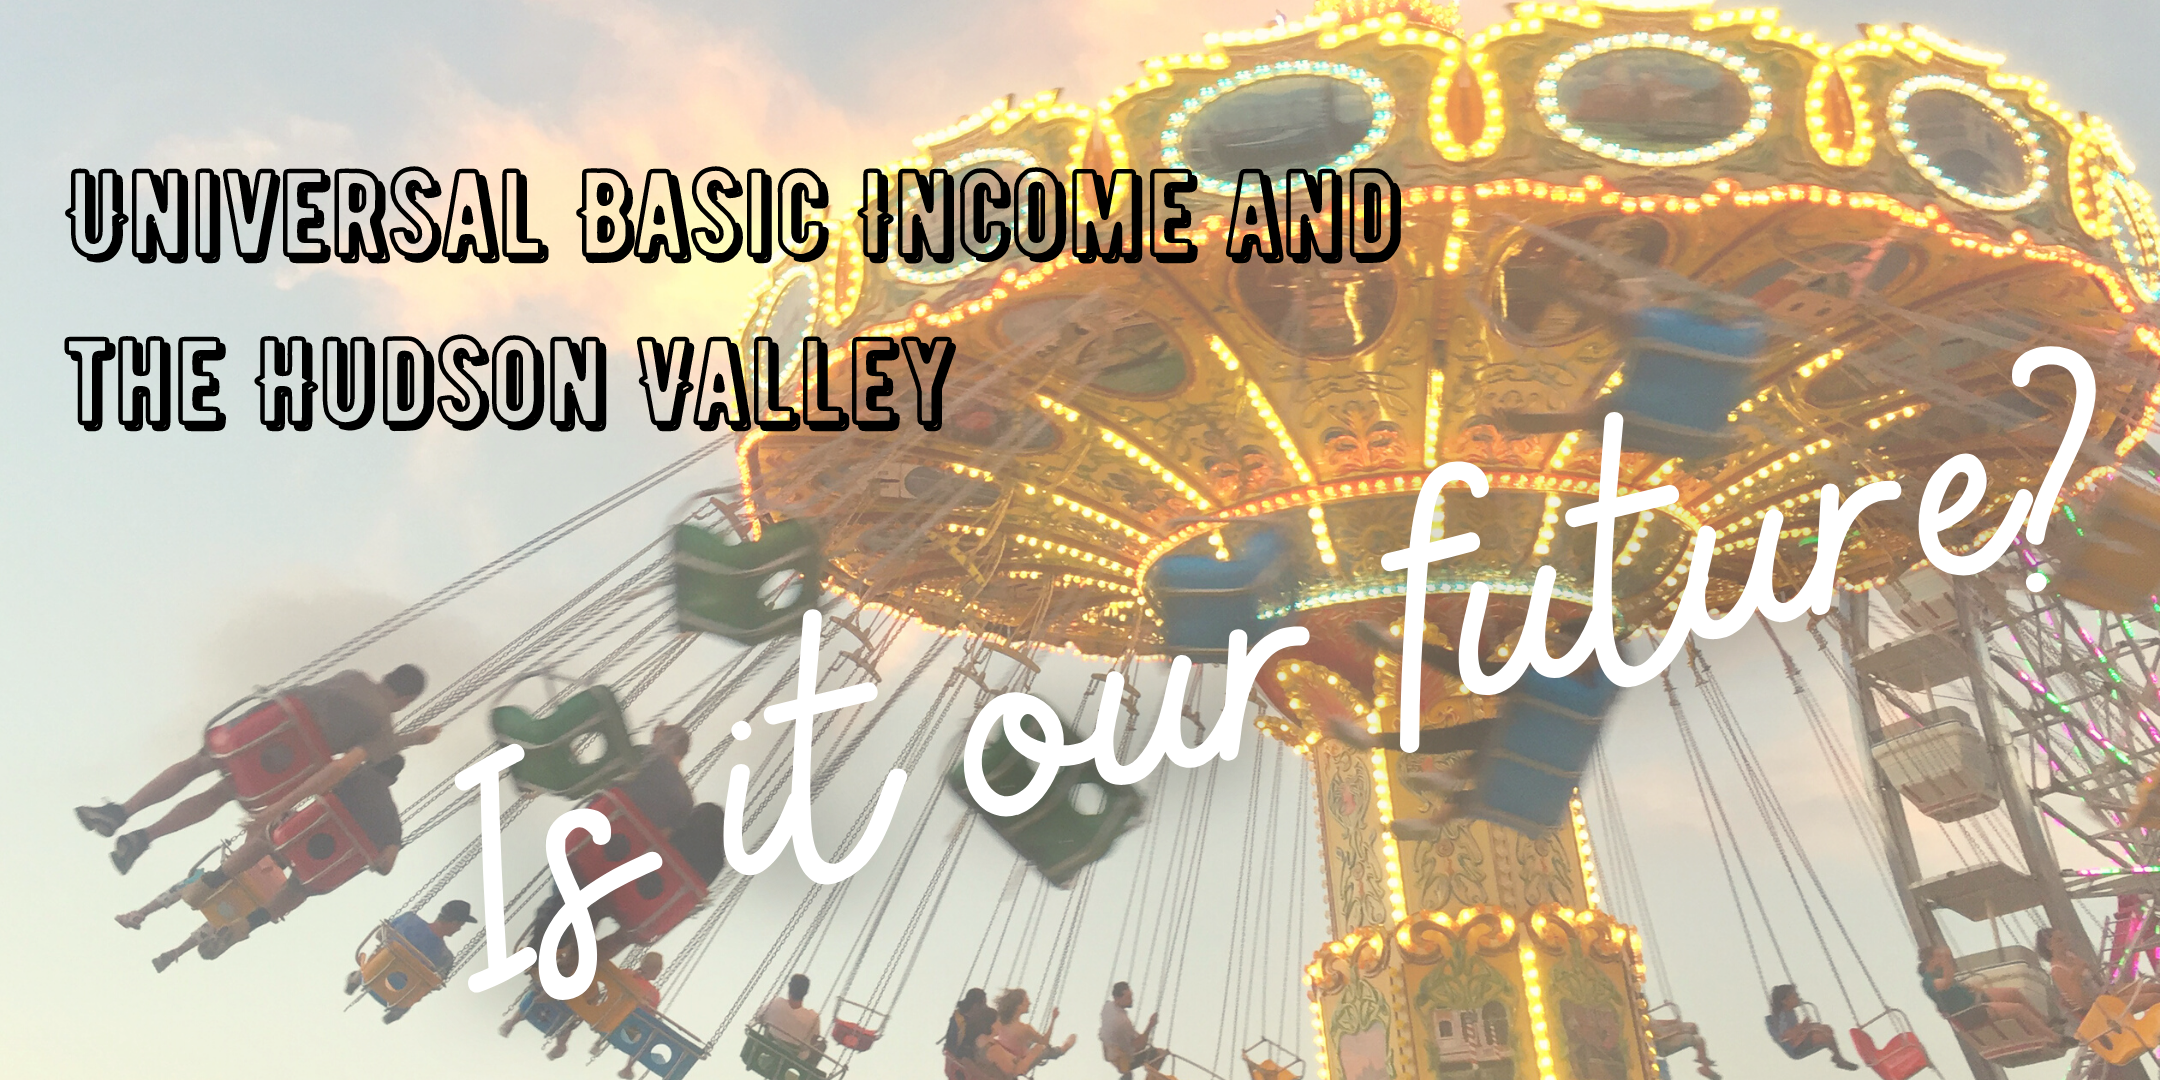 Universal Basic Income and the Hudson Valley